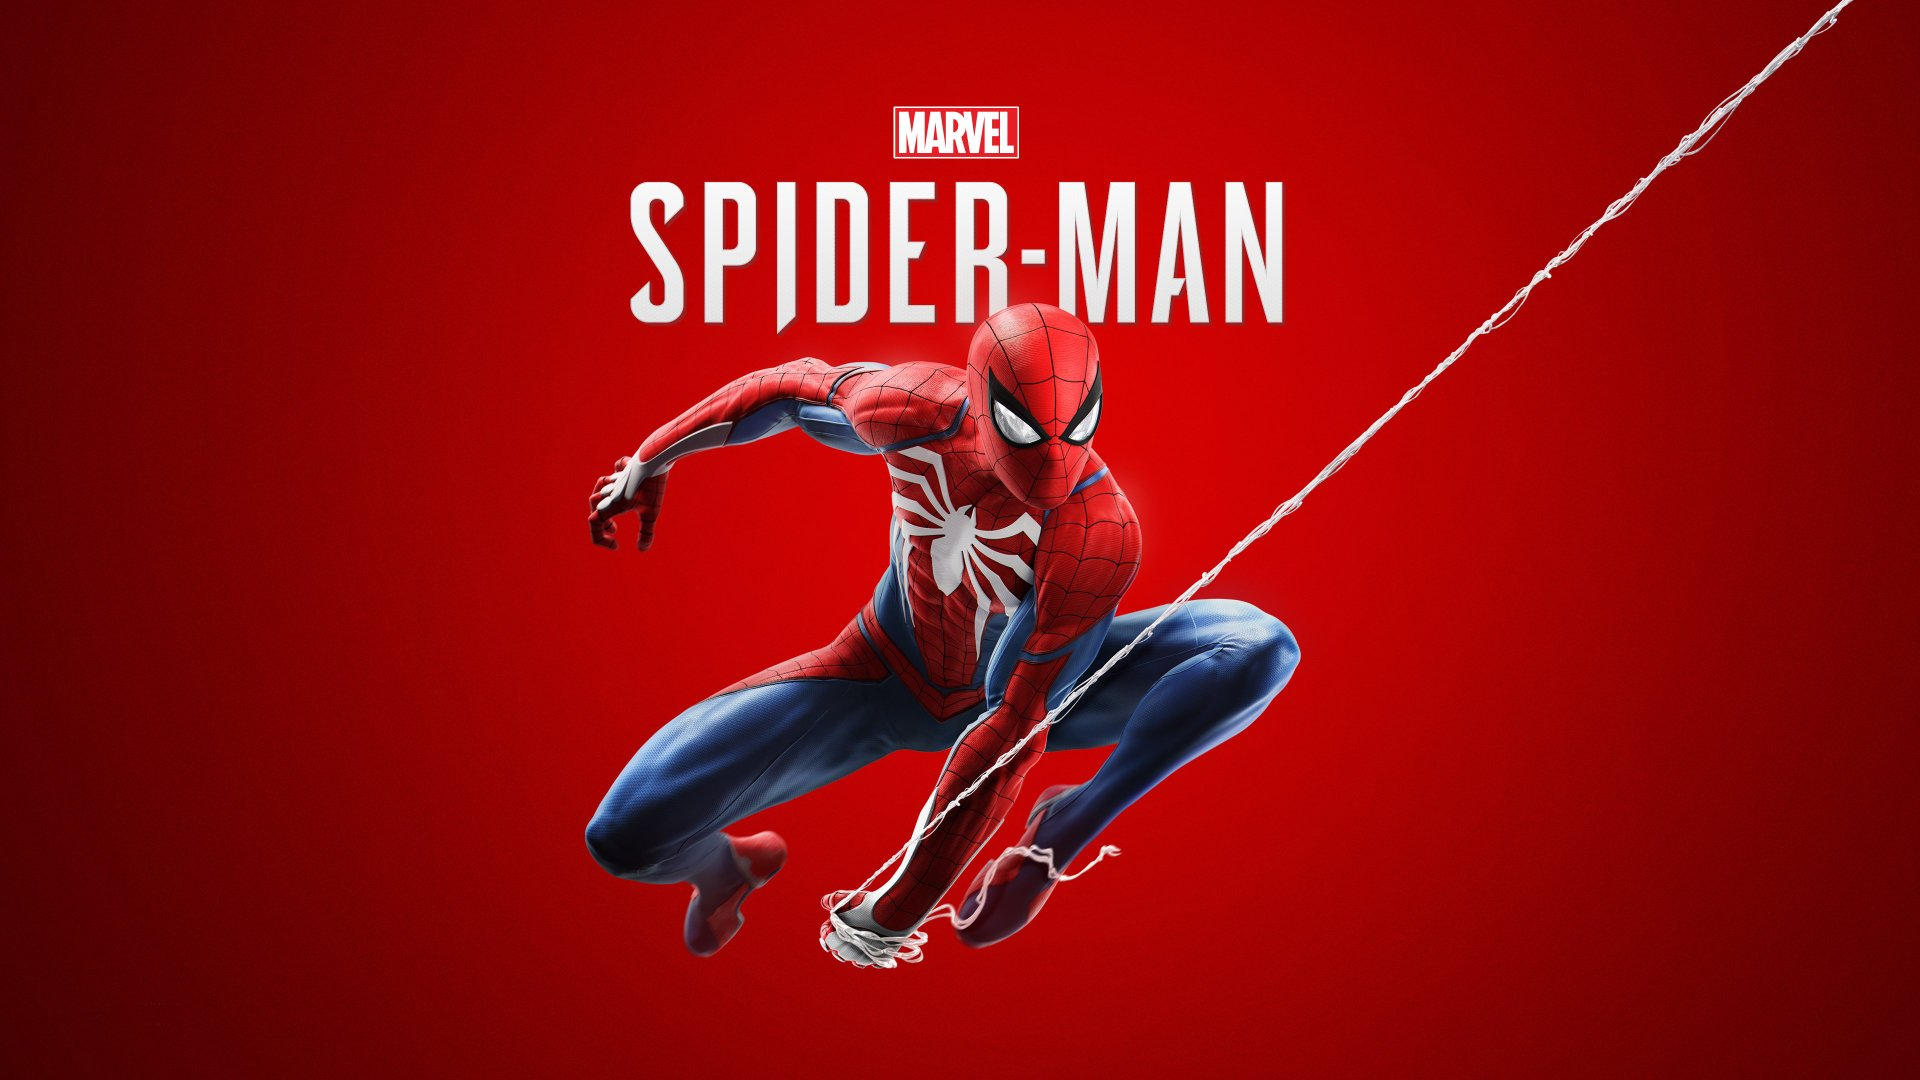 10+ Marvel's Spider-Man HD Wallpapers High Quality Background